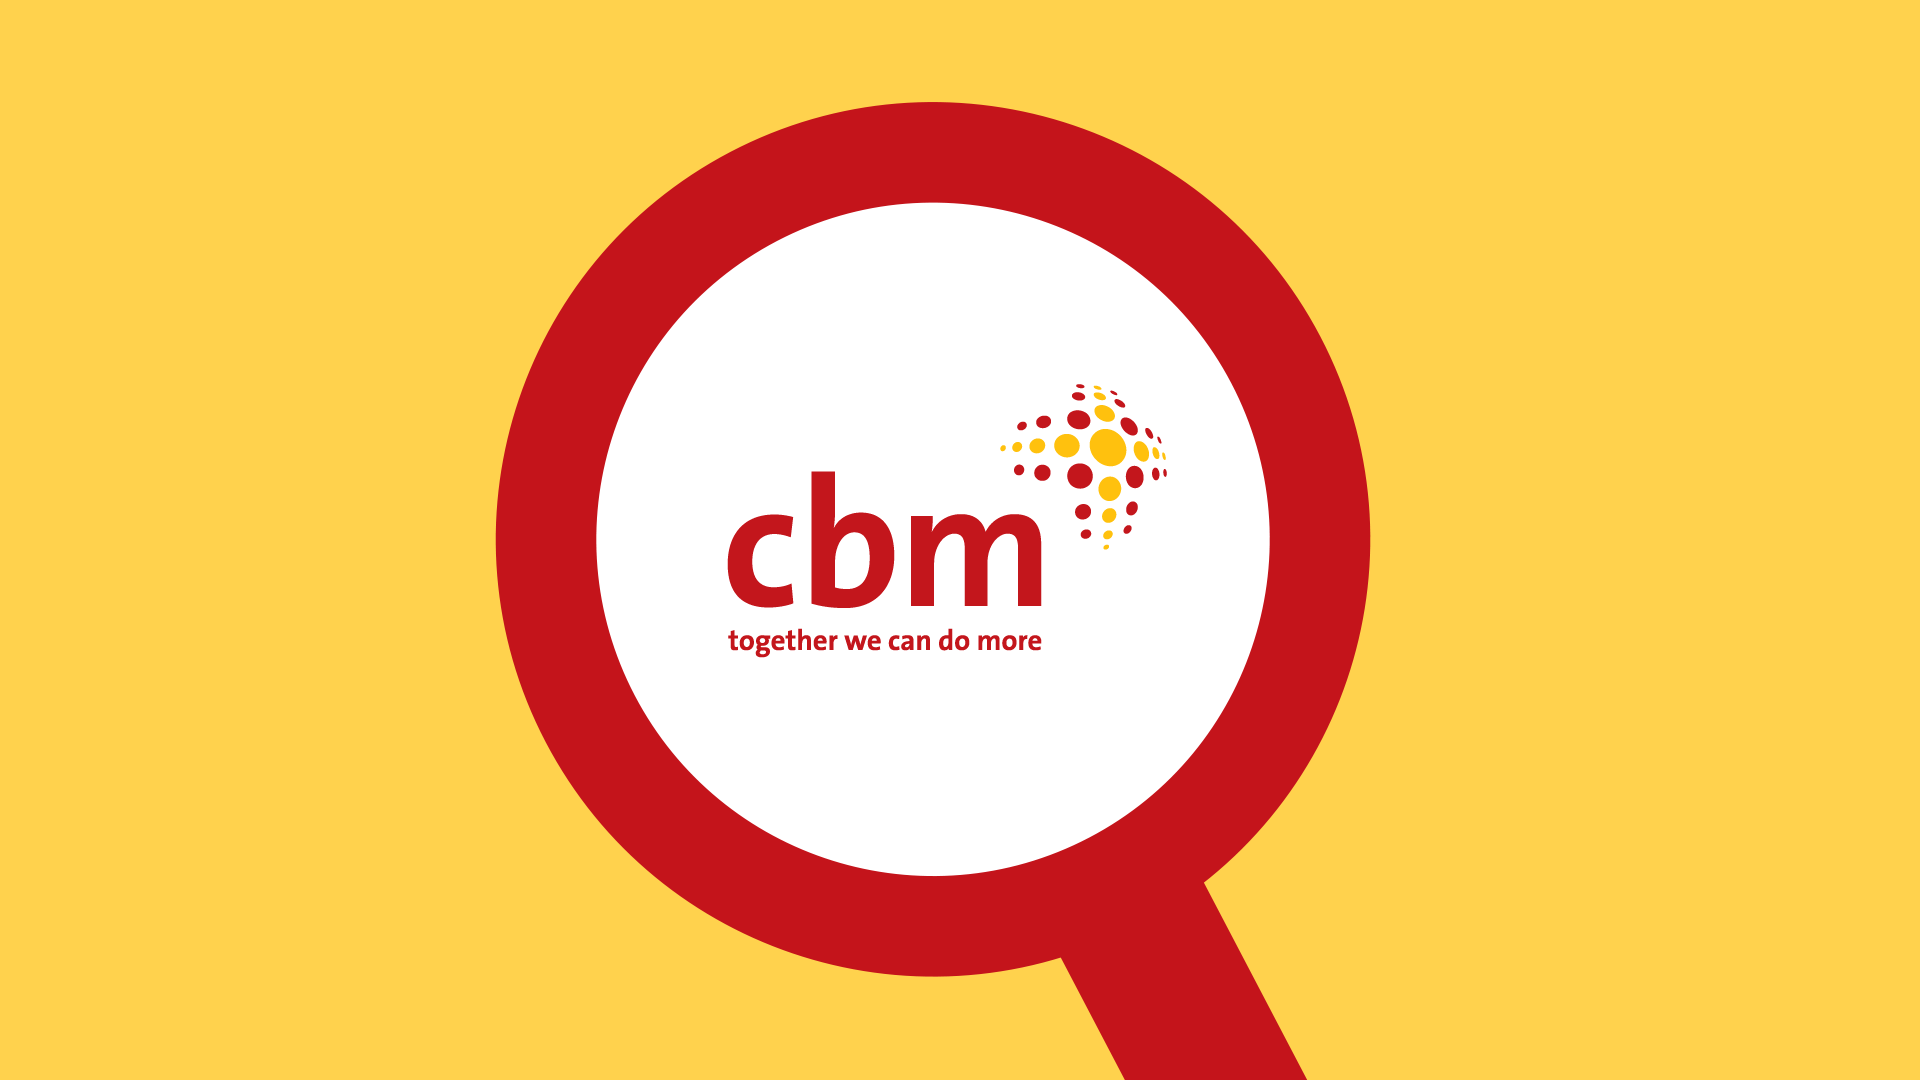 CBM logo inside a magnifier glass